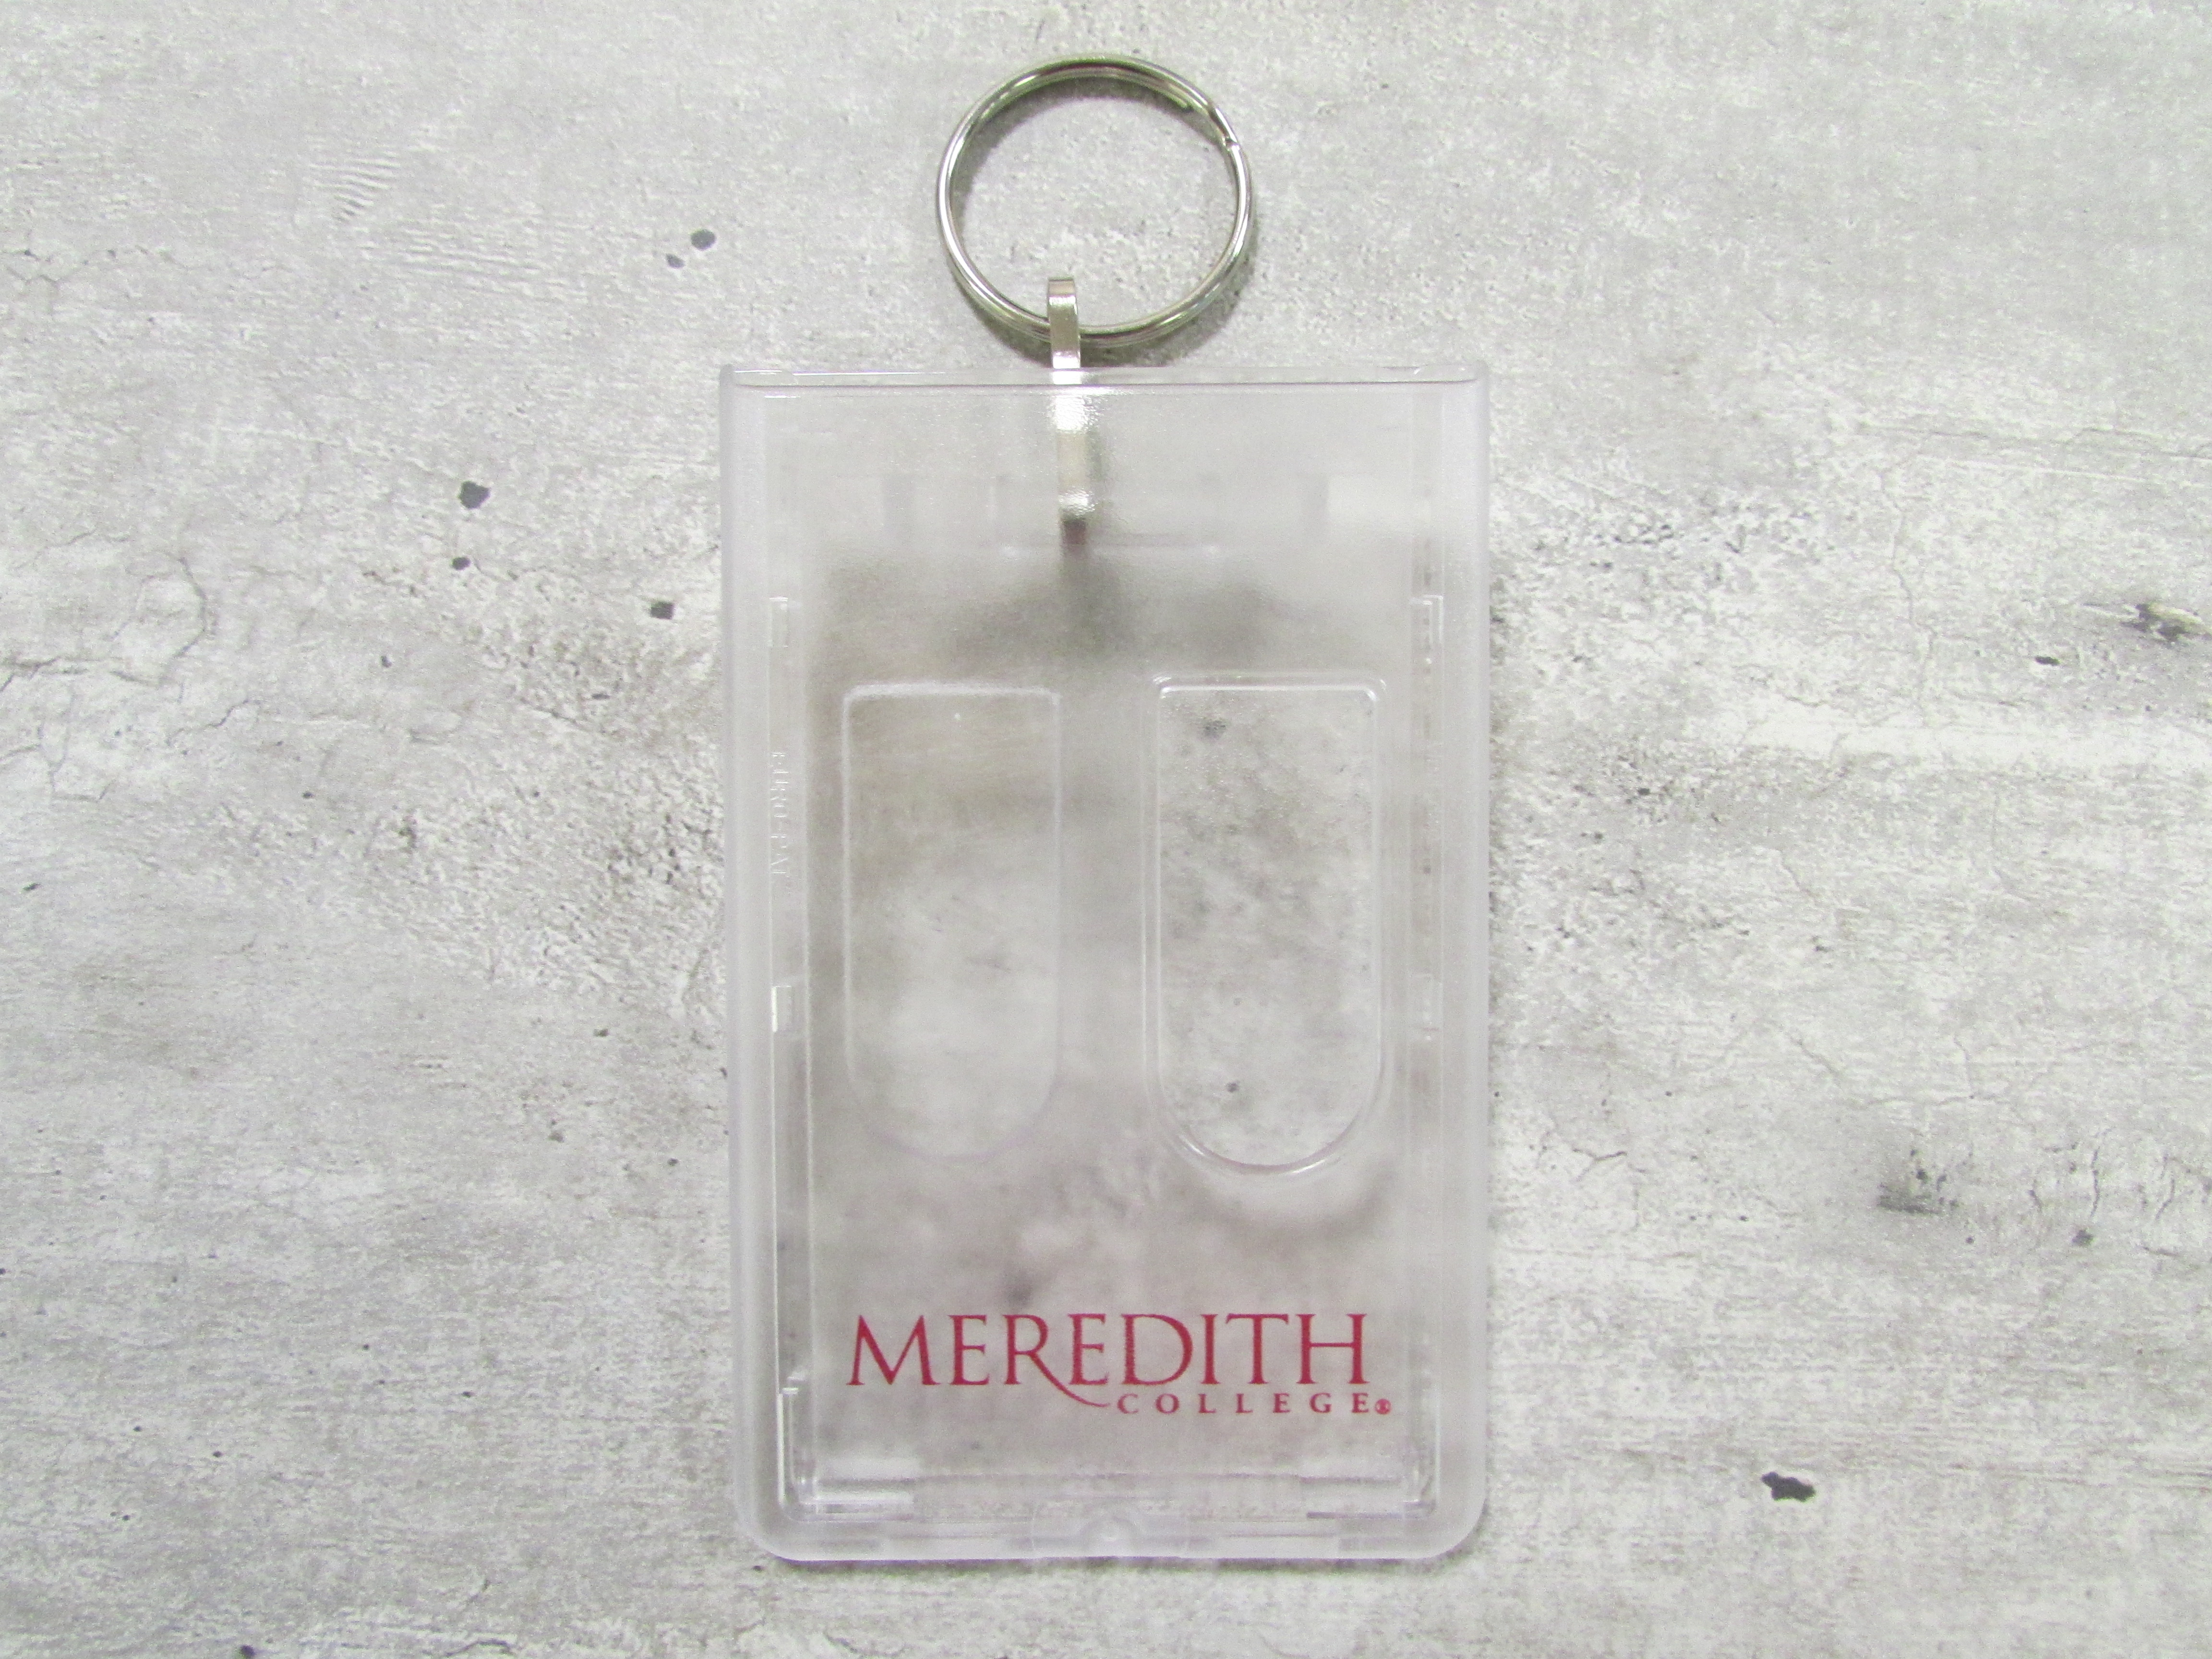 Image for the Keychain Id Card Holder, Meredith College product